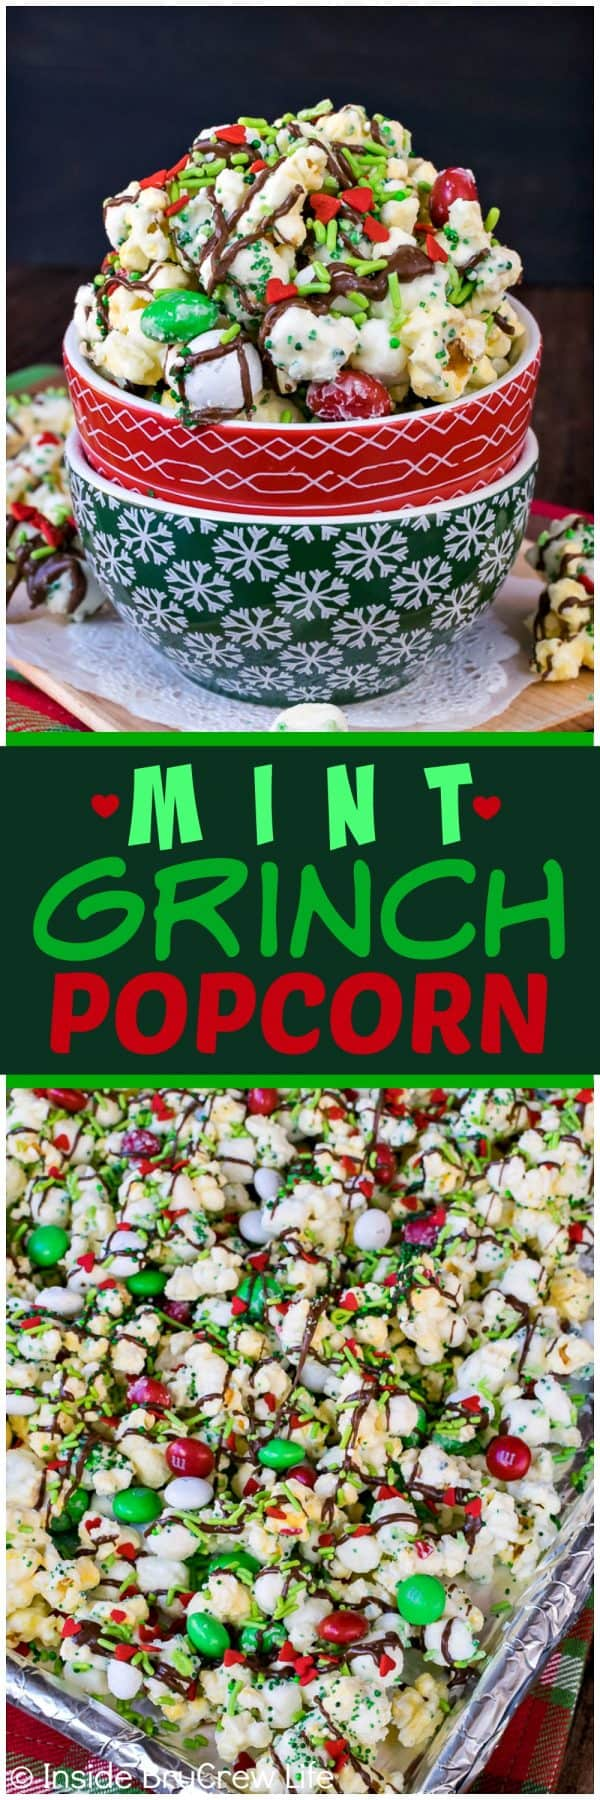 Mint Grinch Popcorn - this easy chocolate covered popcorn is loaded with mint candies, chocolate, and lots of sprinkles. Easy recipe for holiday movie nights!